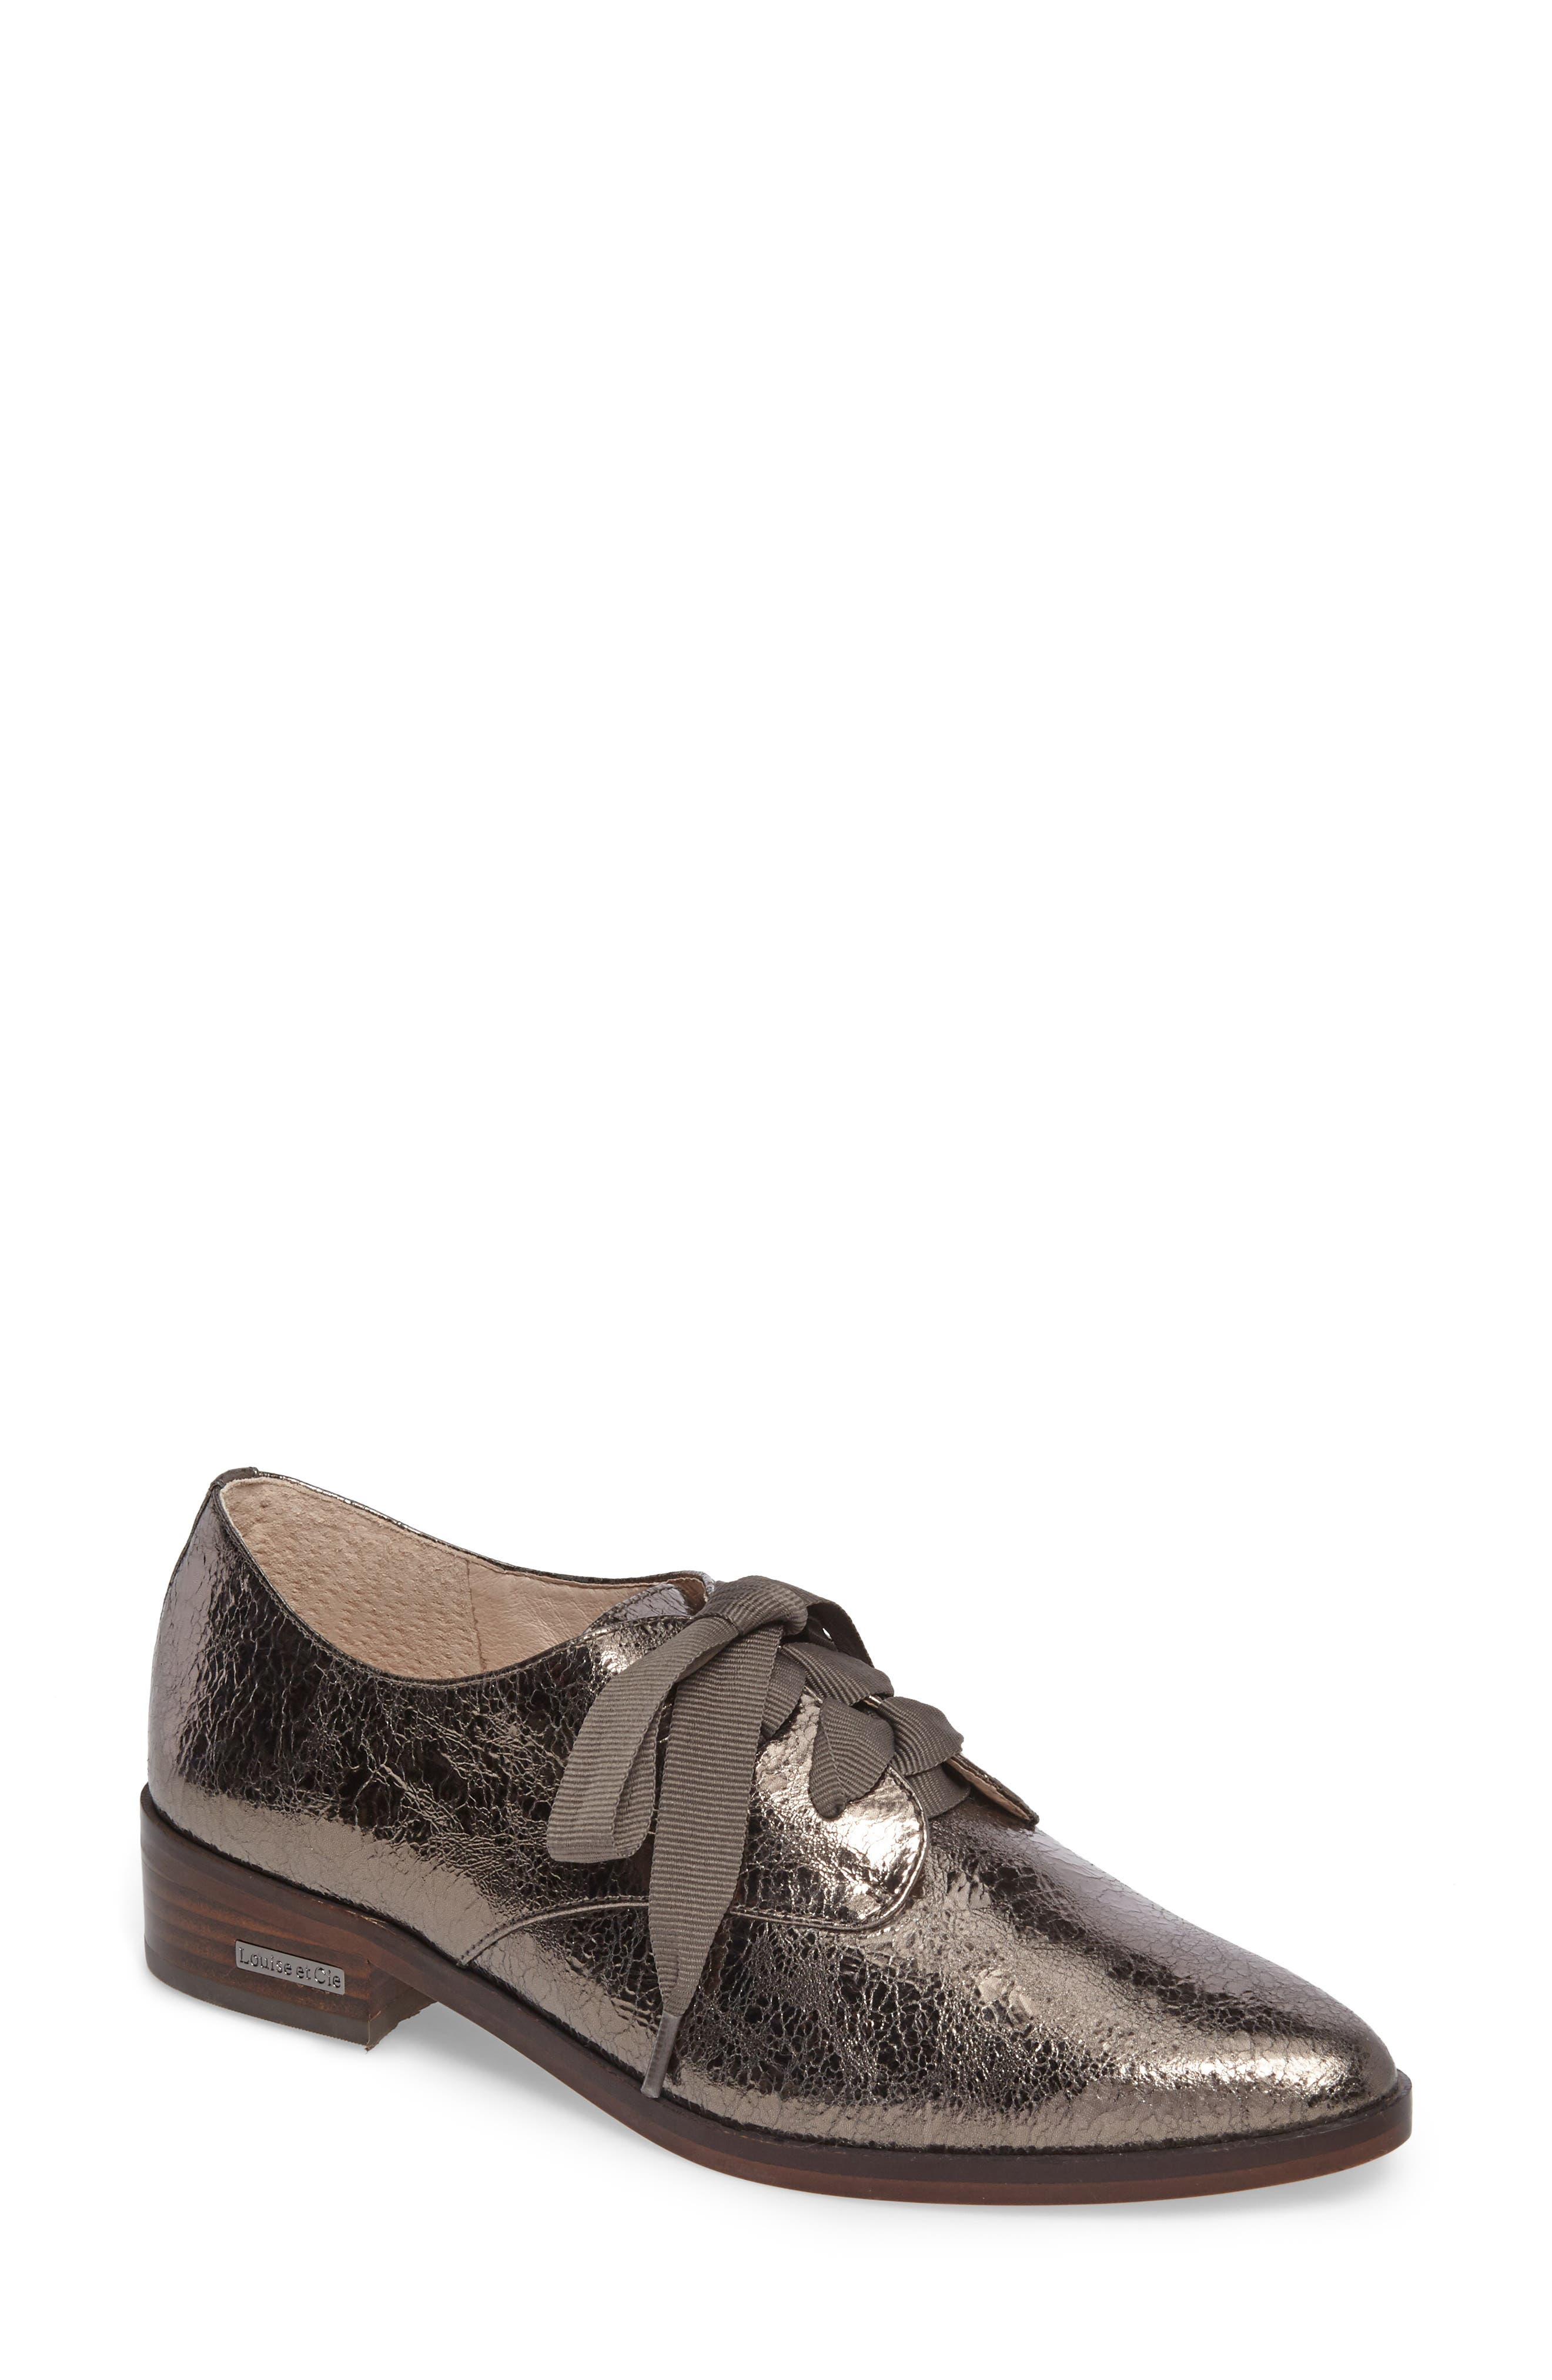 Main Image - Louise et Cie 'Adwin' Almond Toe Oxford (Women) (Nordstrom Exclusive)